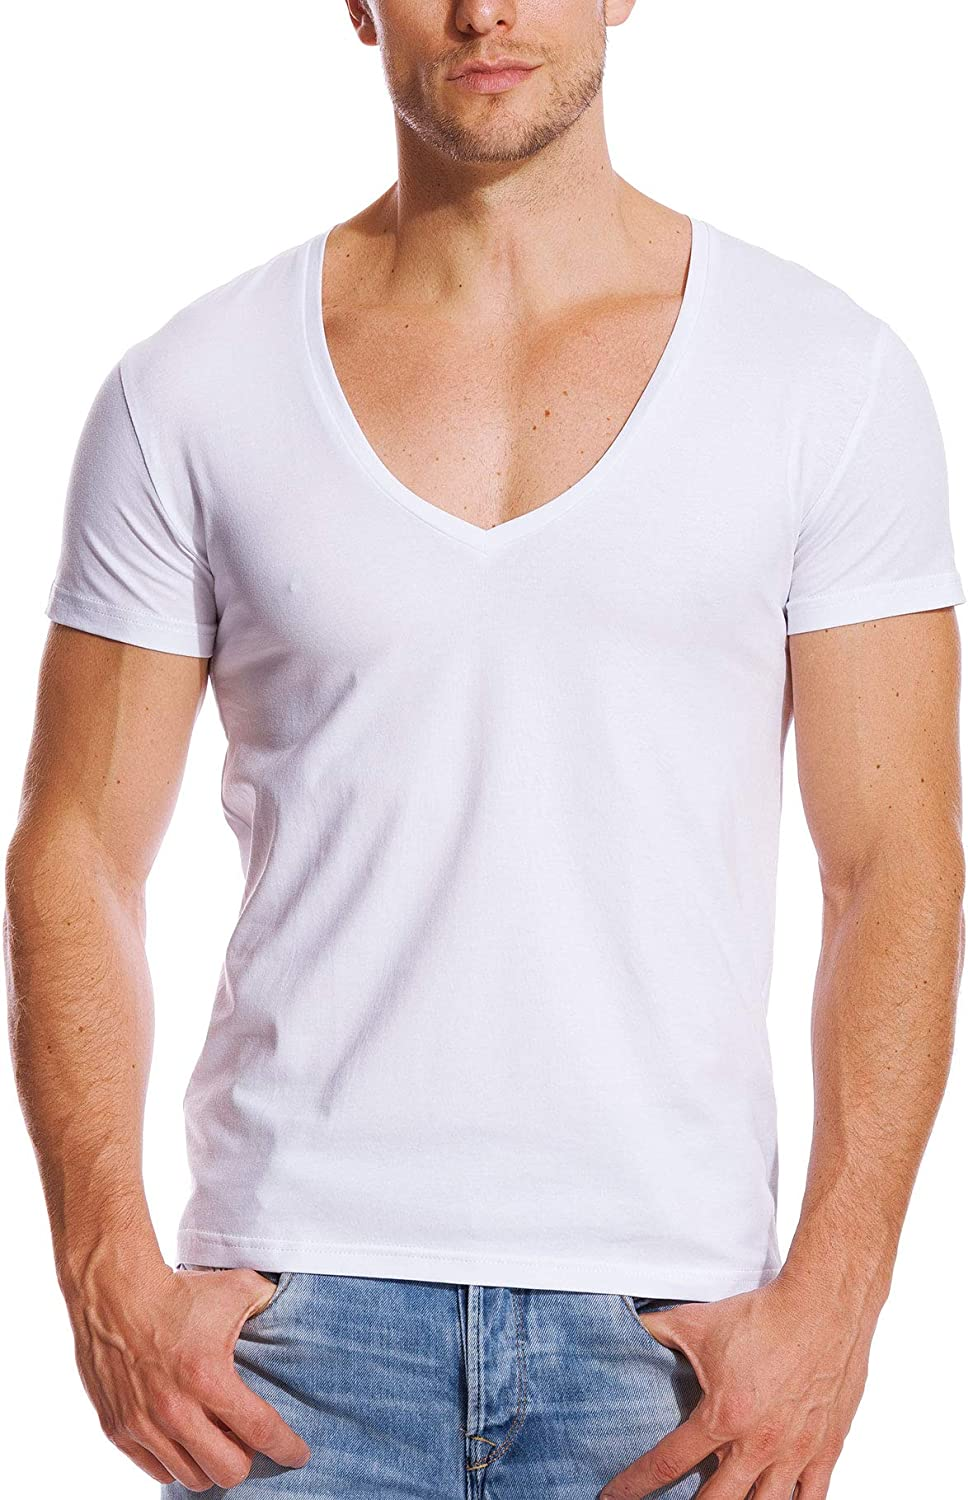 Zbrandy Deep V Neck Shirts Men Low Cut T Shirts Short Sleeve Tee Top Stretch Undershirts Amazon Ca Clothing Accessories